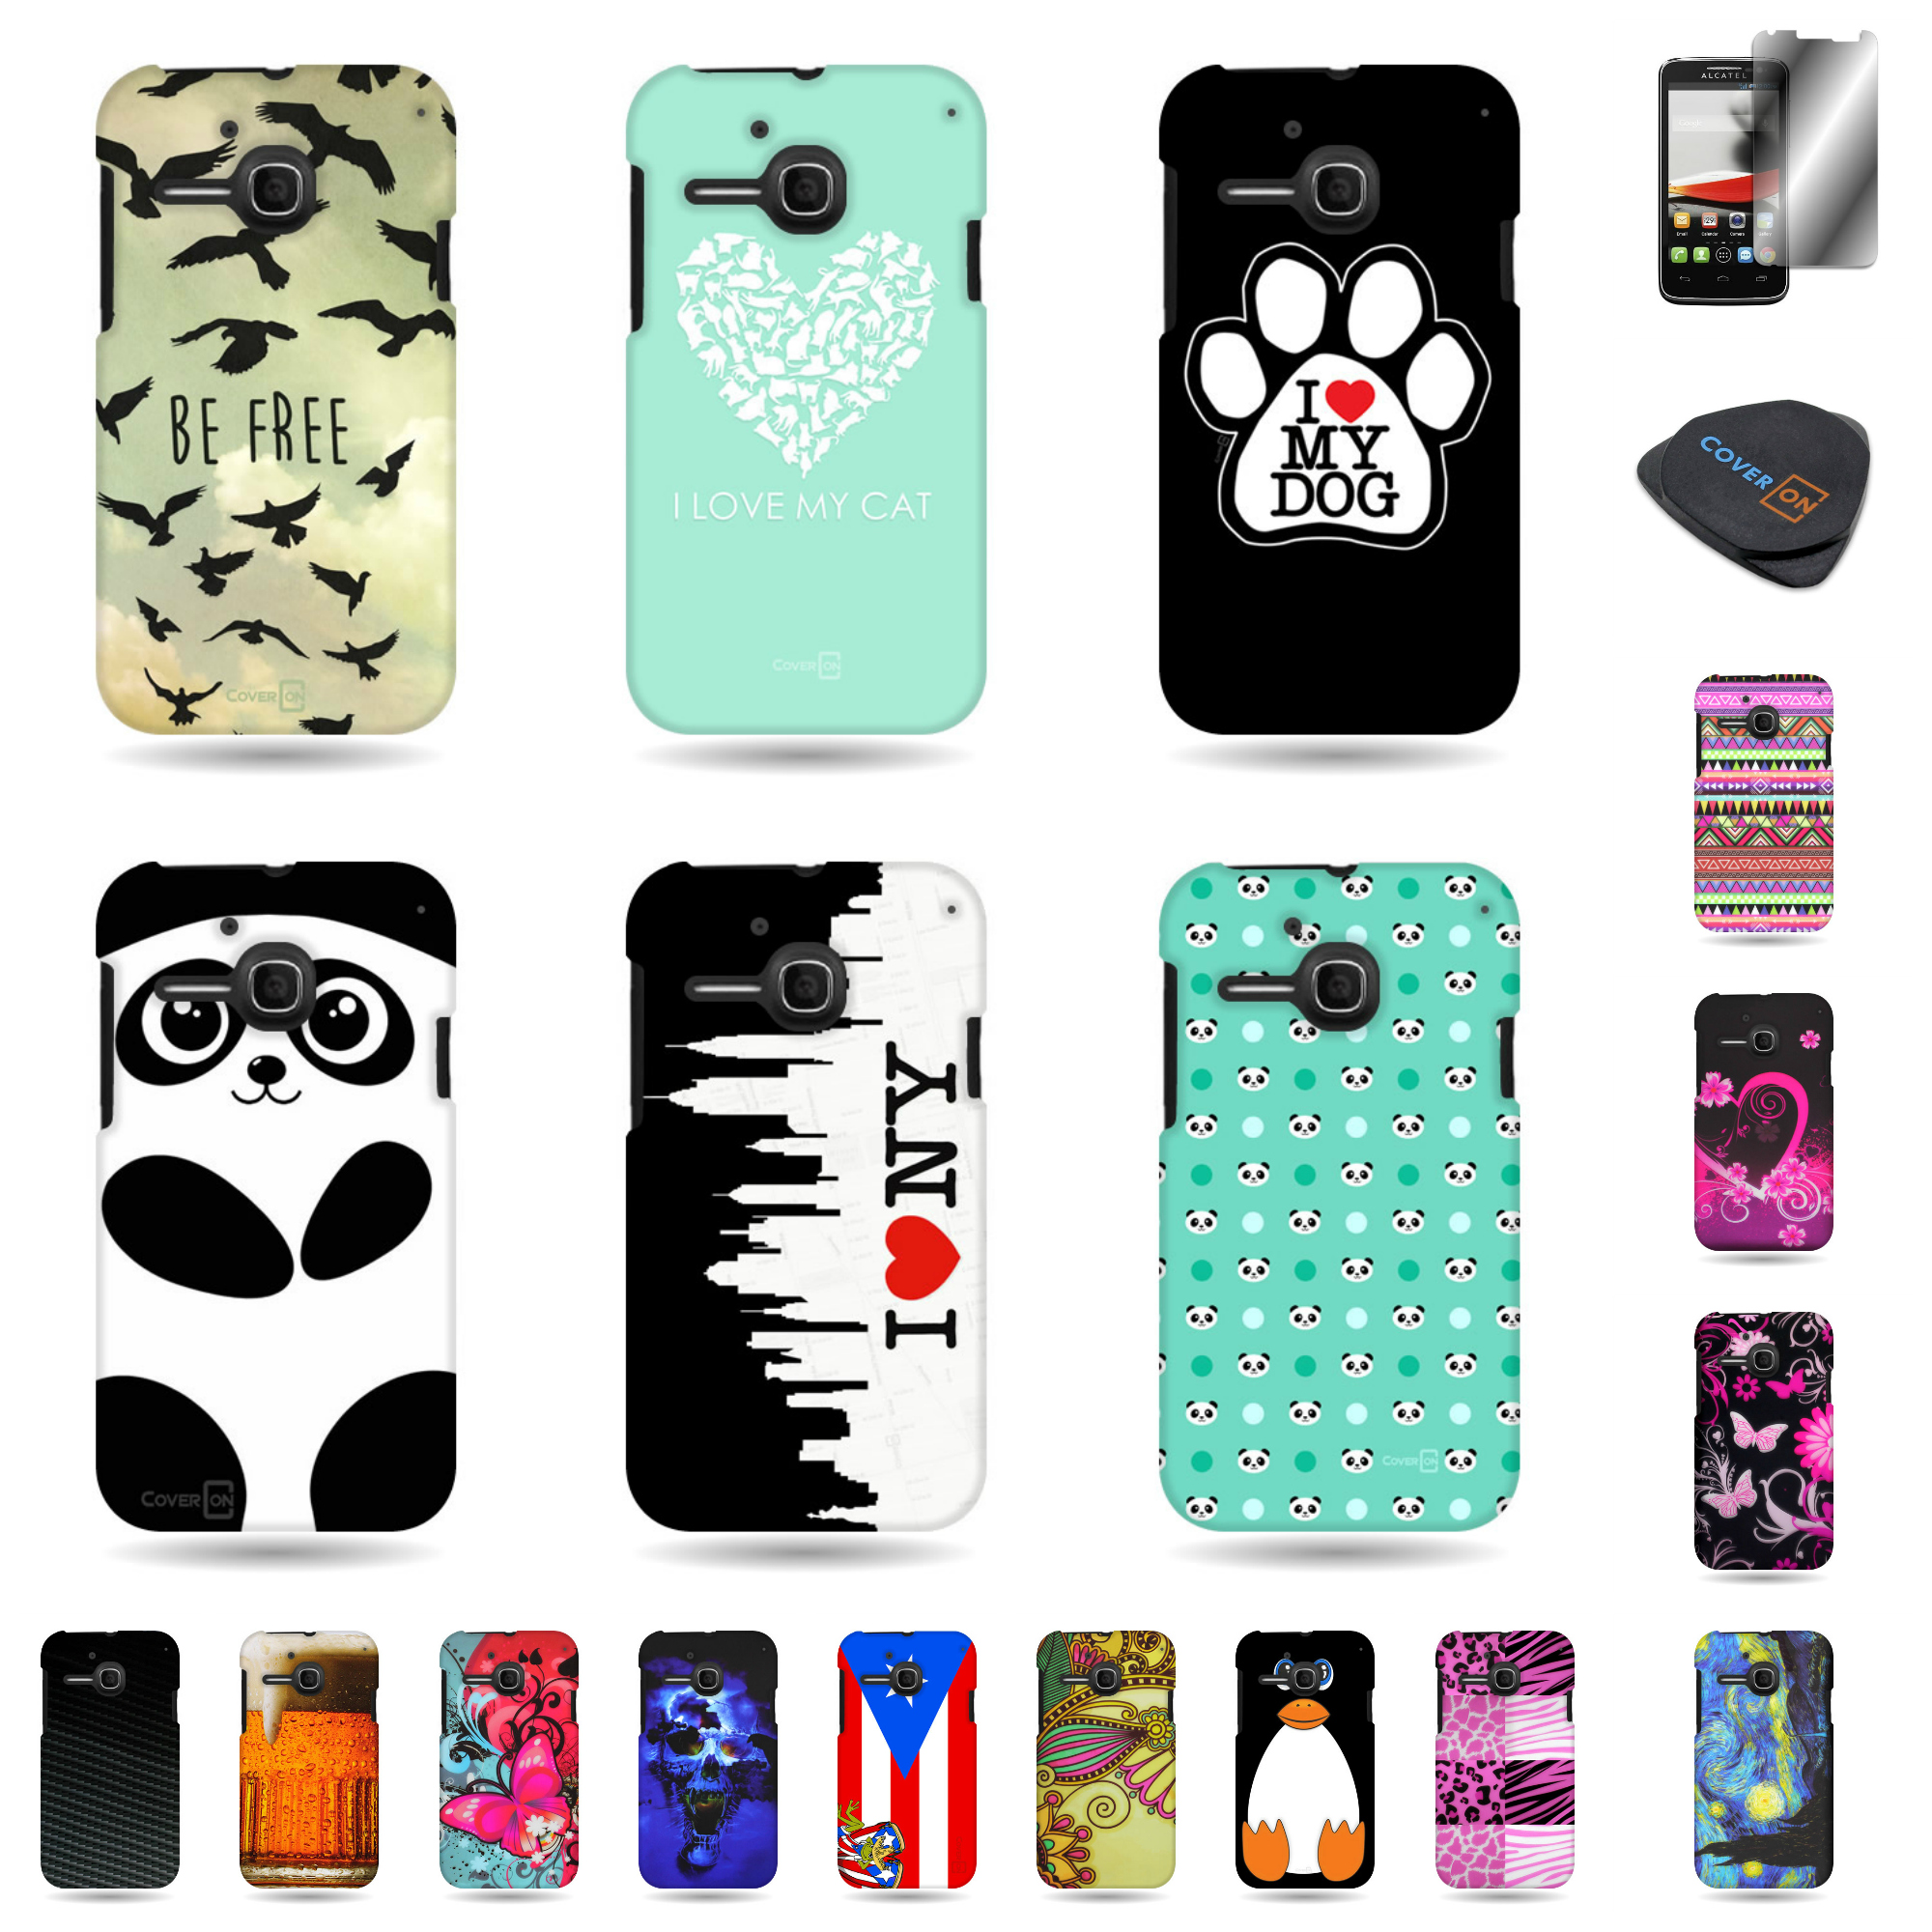 promo code 85658 ce533 For ALCATEL One Touch Evolve 5020T (1st Gen) Various Case Hard ...